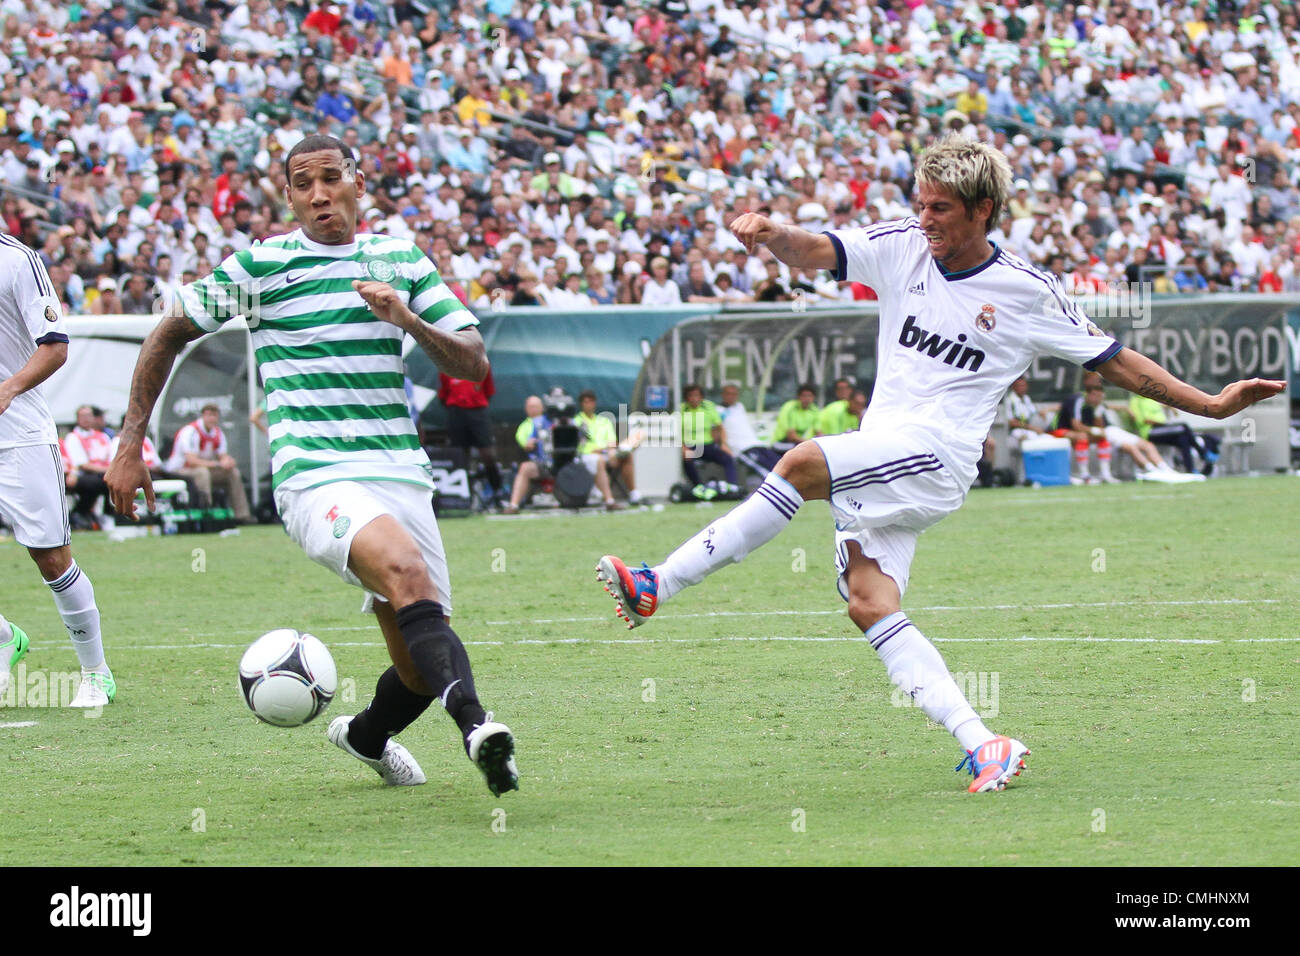 11.08.2012. Philadelphia, USA.  Real Madrid midfielder Fabio Coentrao (15) kicks the ball past Celtic FC defender Stock Photo